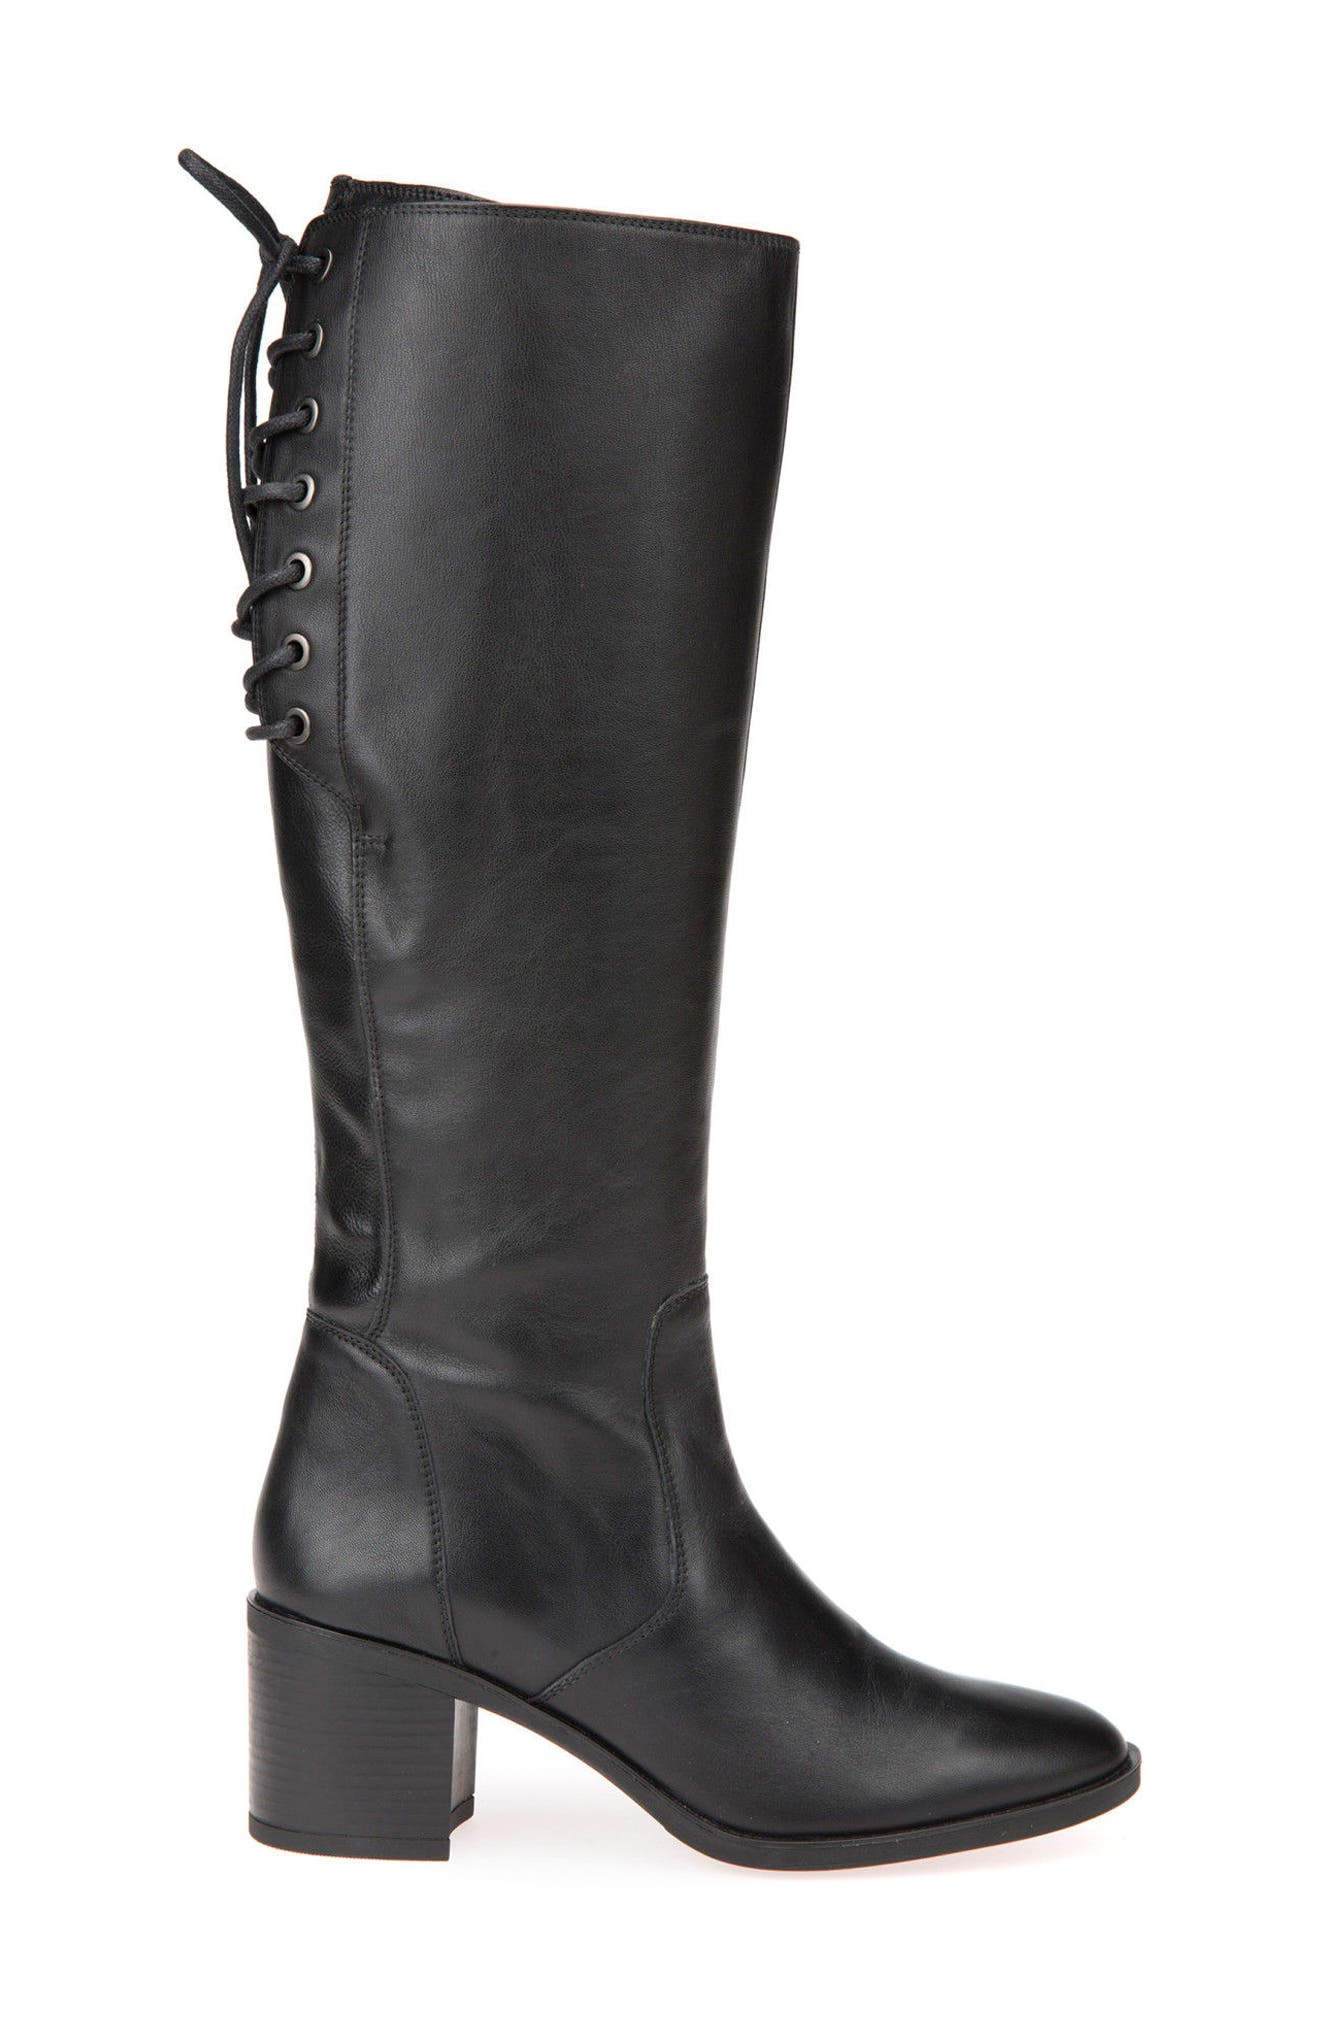 Alternate Image 3  - Geox Glynna Knee High Boot (Women)